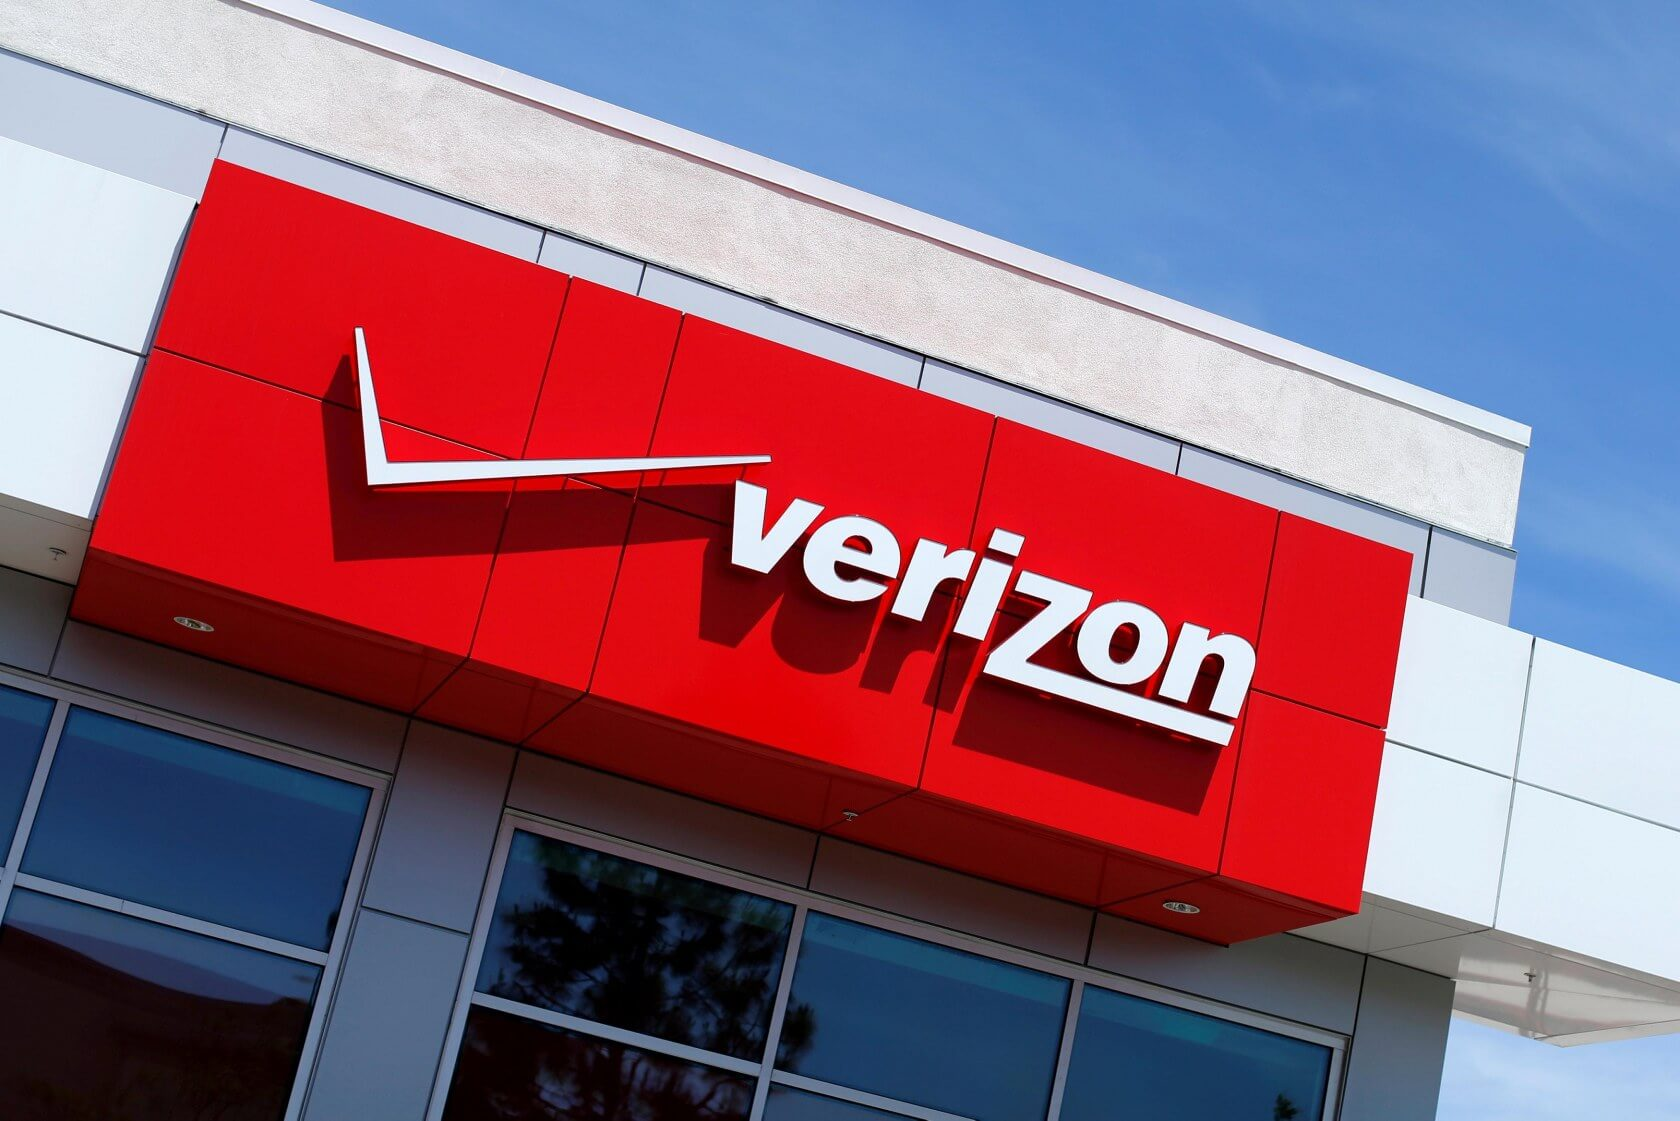 FCC grants Verizon permission to lock new phones to its network for